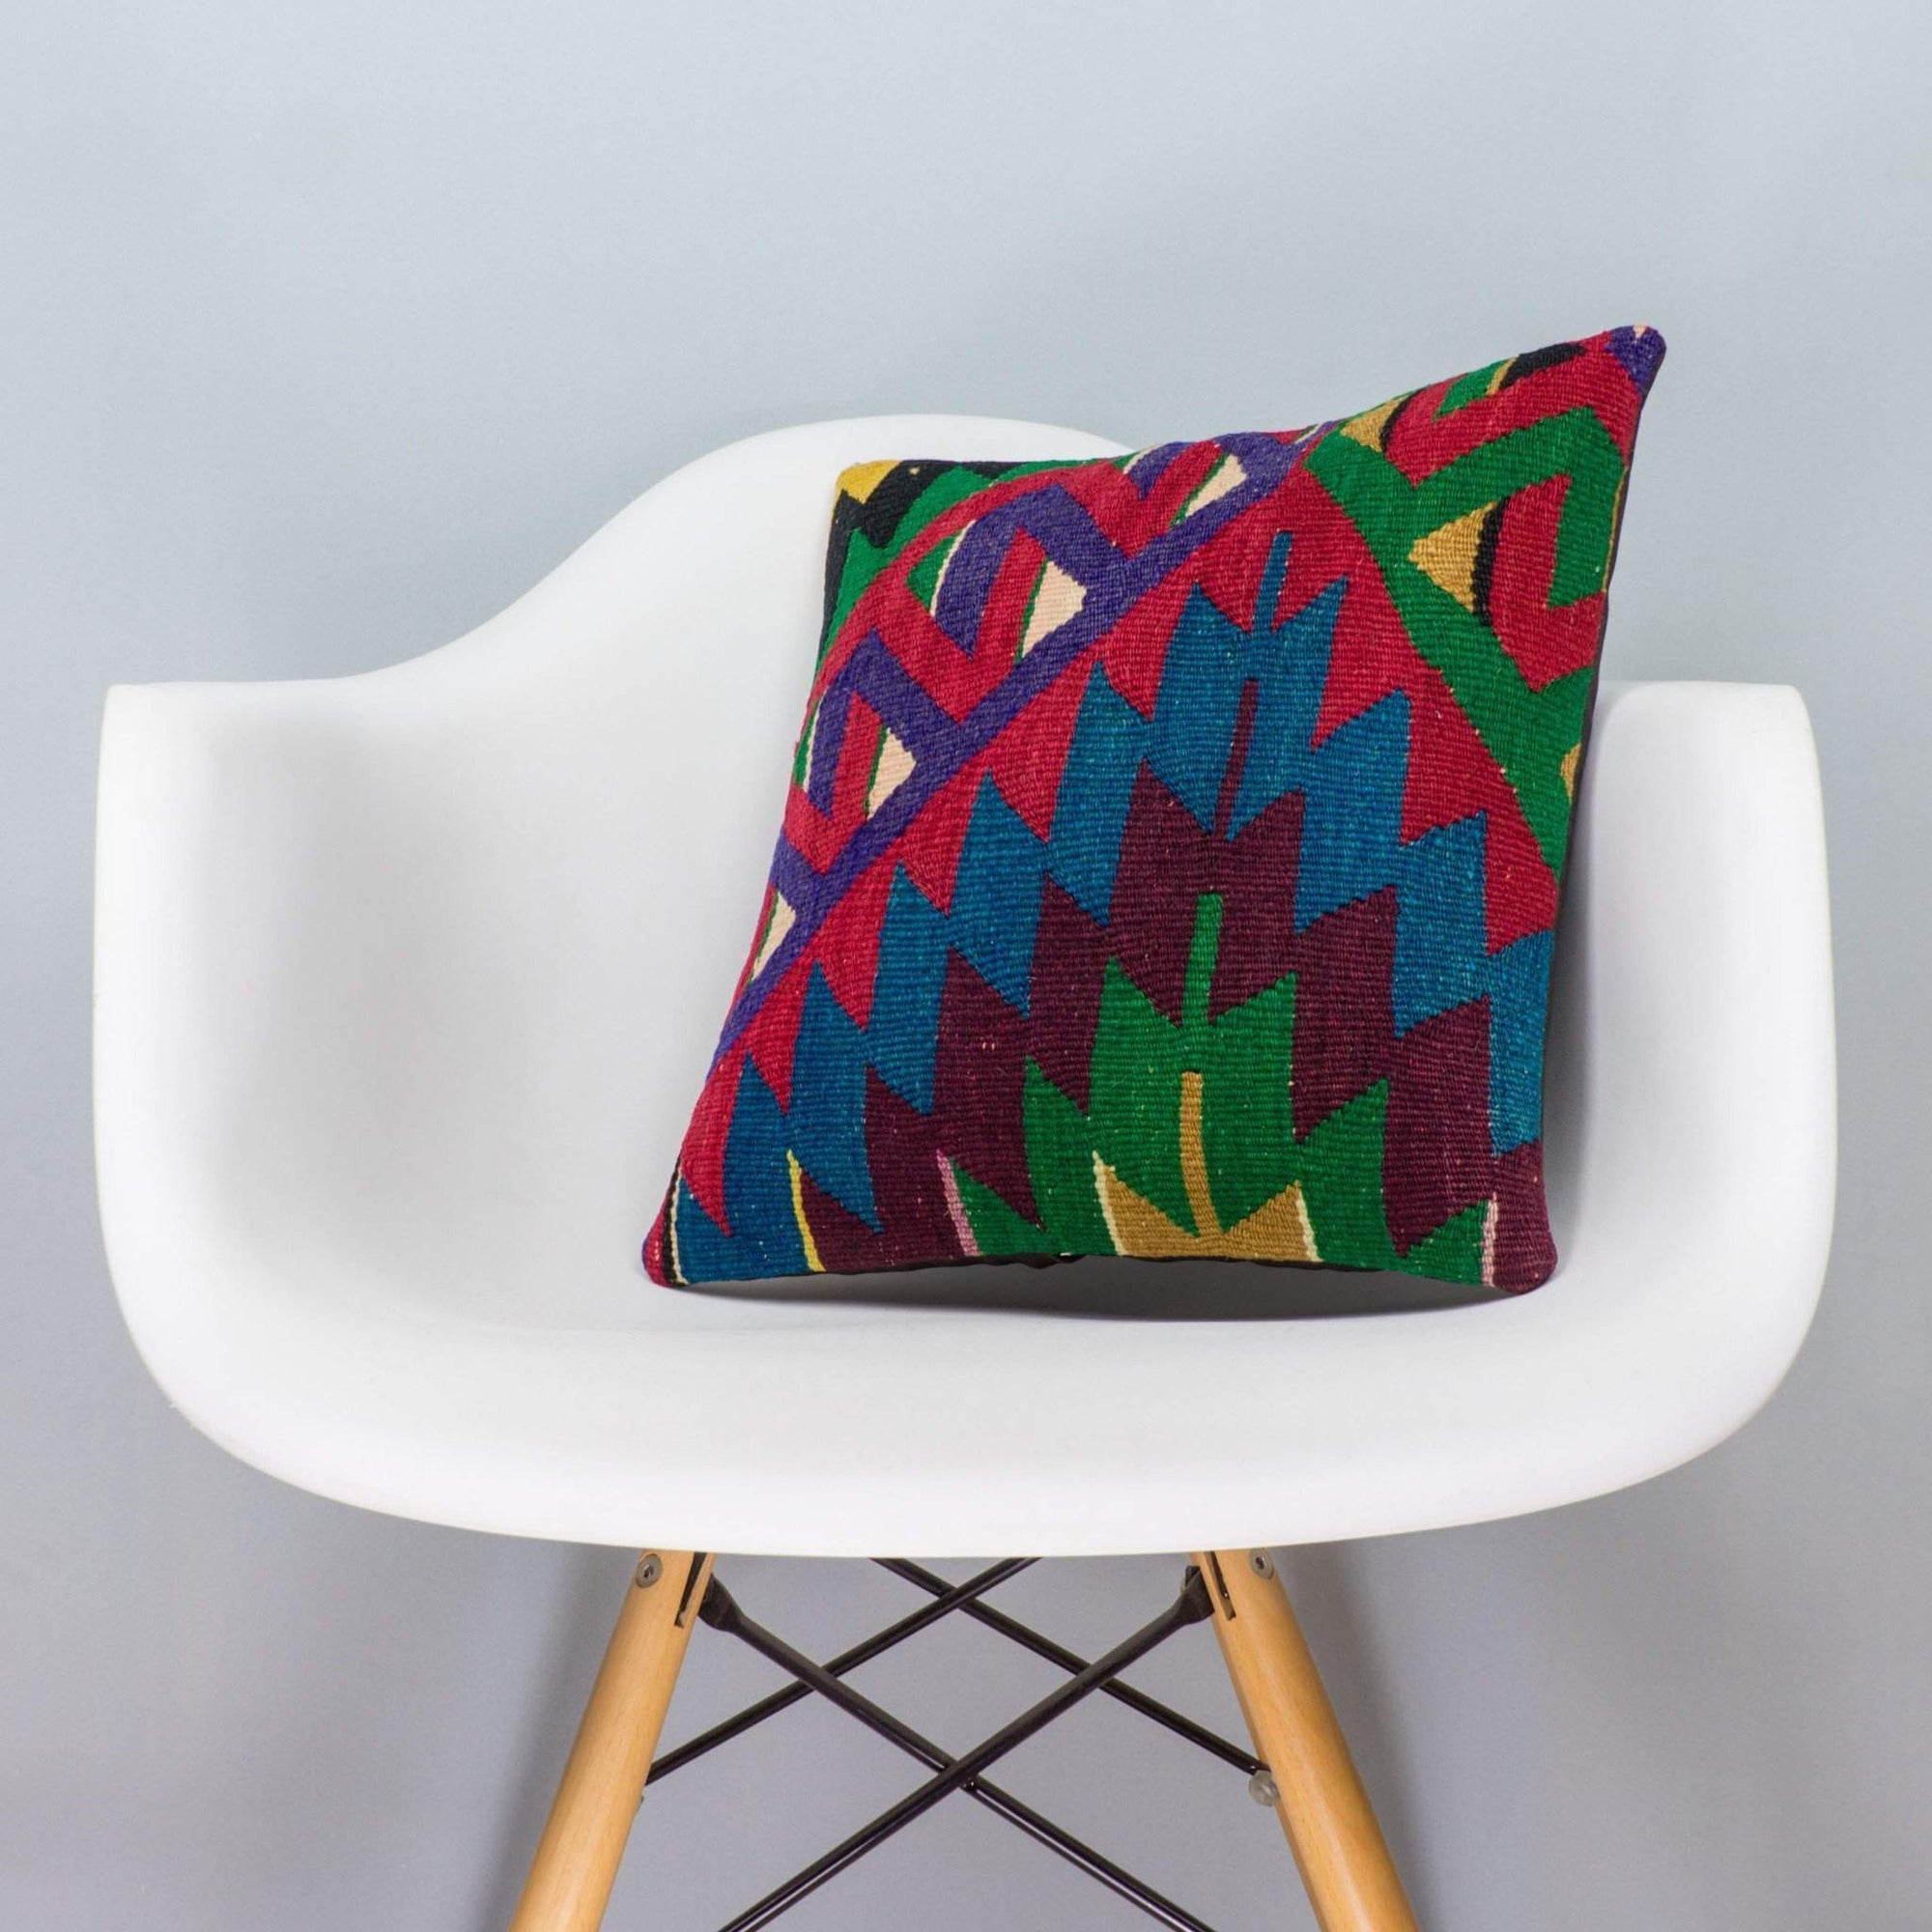 Chevron Multi Color Kilim Pillow Cover 16x16 3297 - kilimpillowstore  - 1